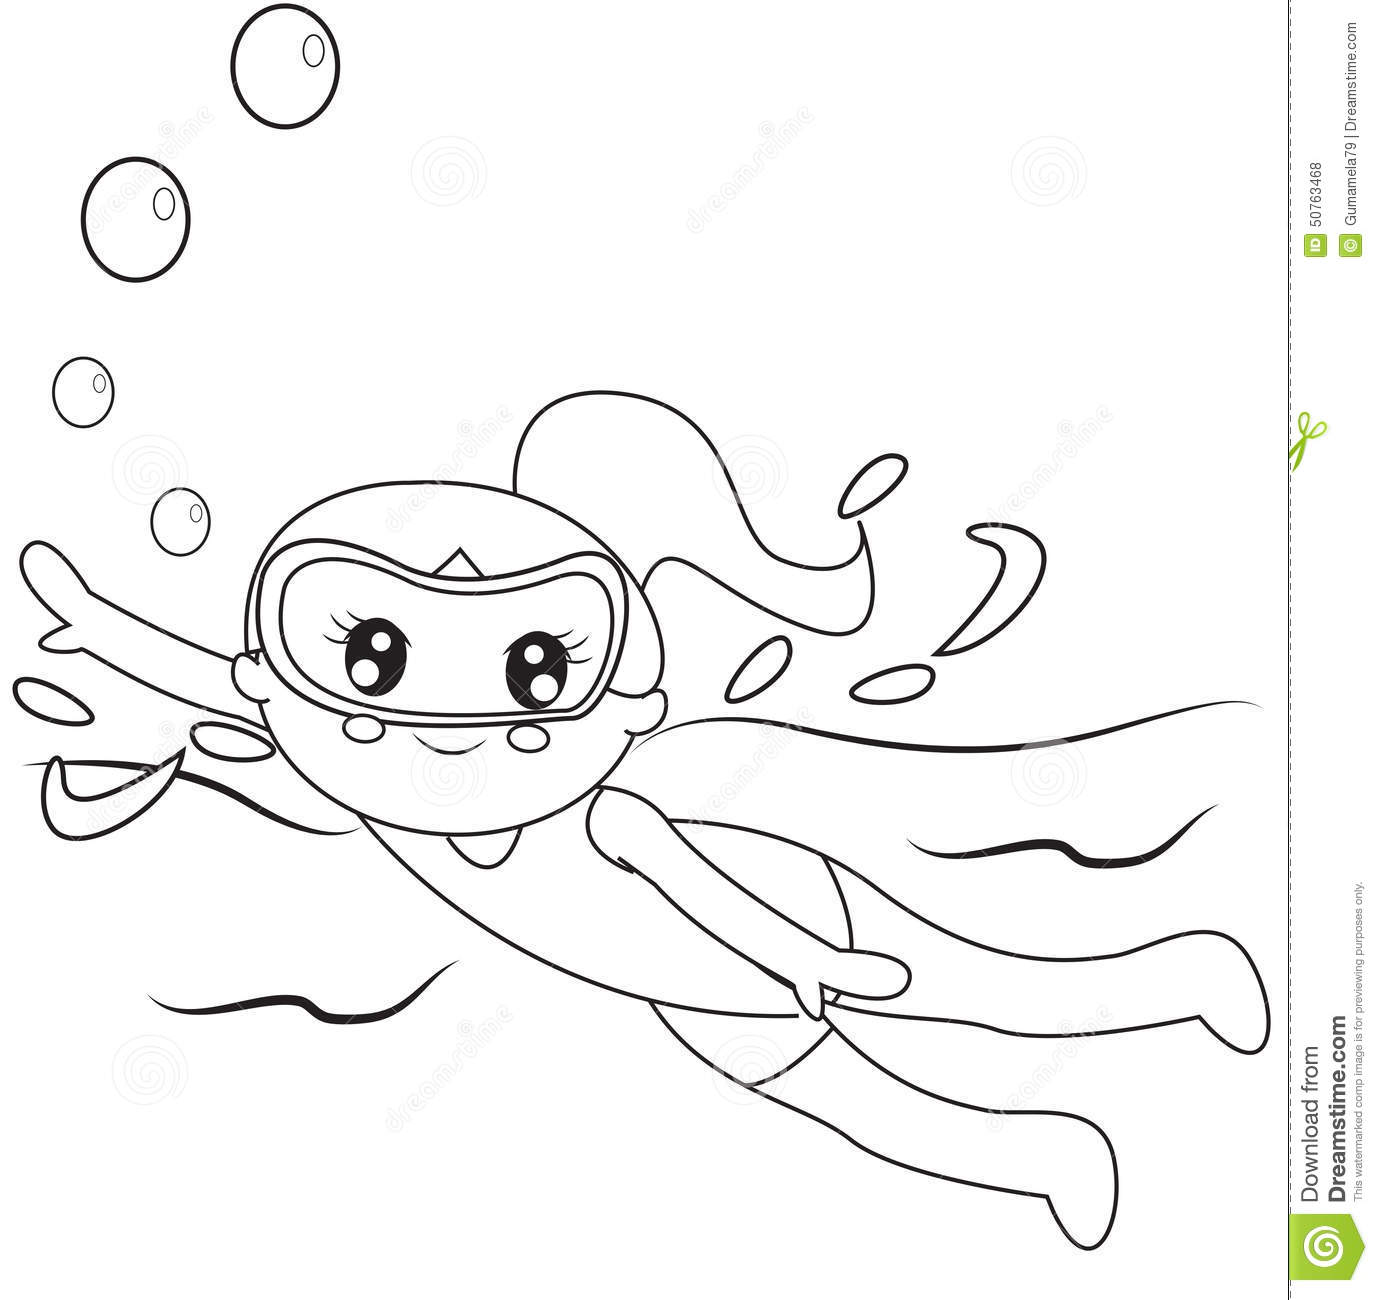 Swimmer coloring page stock illustration. Illustration of ... Kids Swimming Black And White